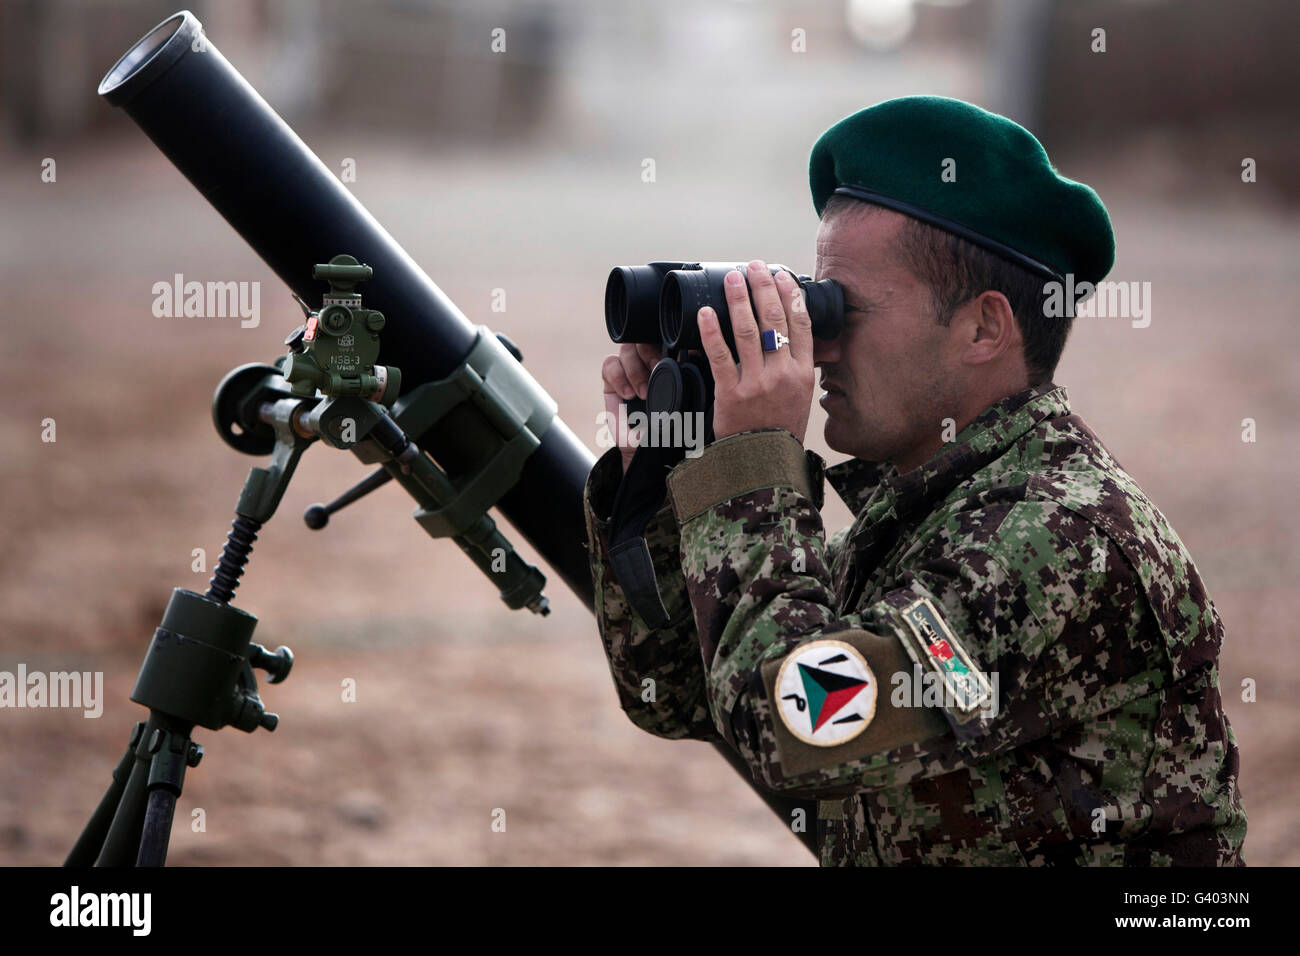 An Afghan National Army soldier trains to employ a mortar tube. - Stock Image